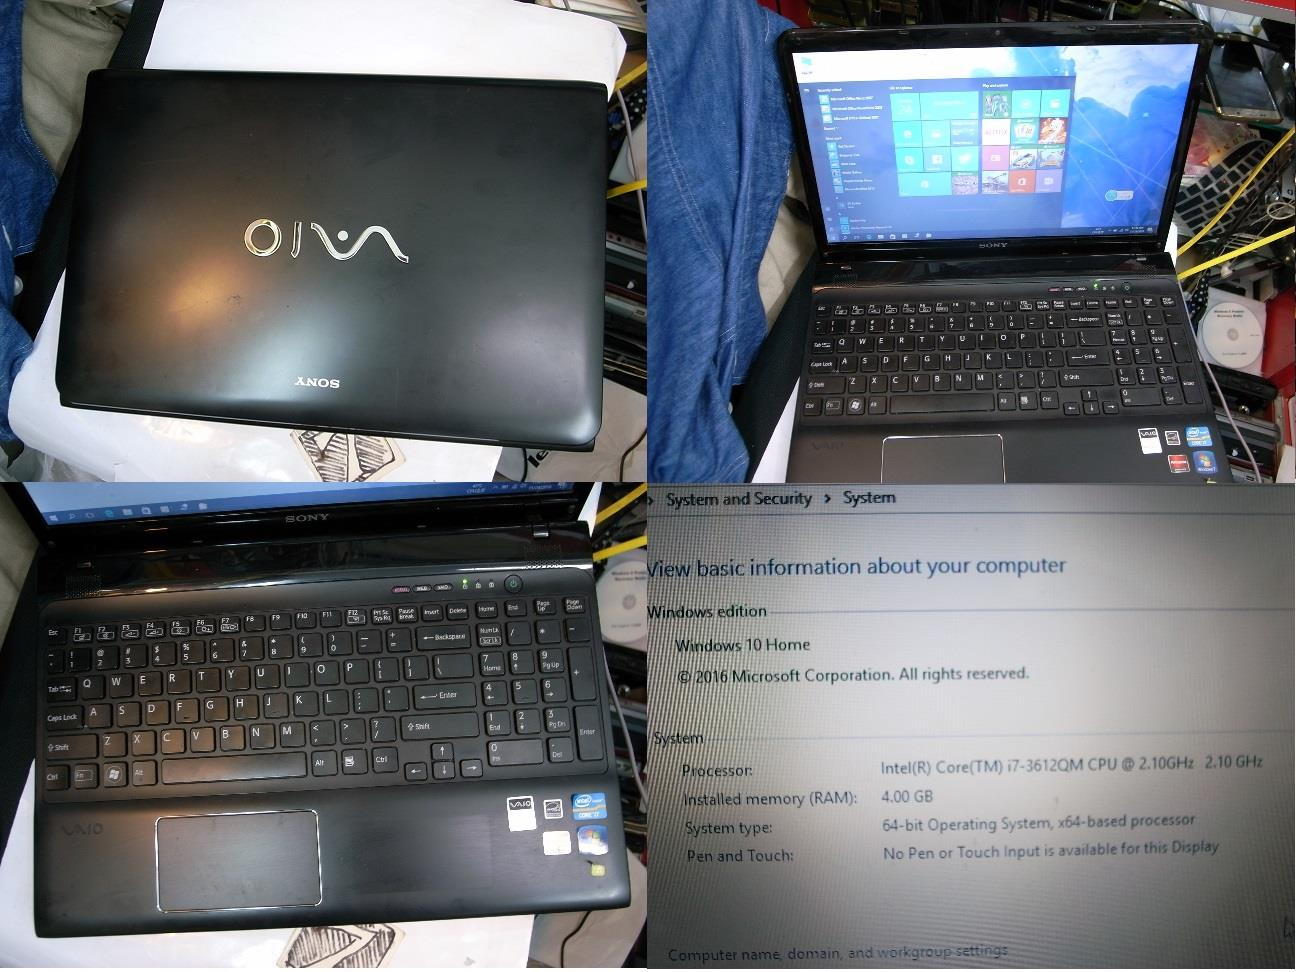 Sony VAIO E i7 Gen 3rd 640GB ATI Mobility Gamming Notebook Rm1480